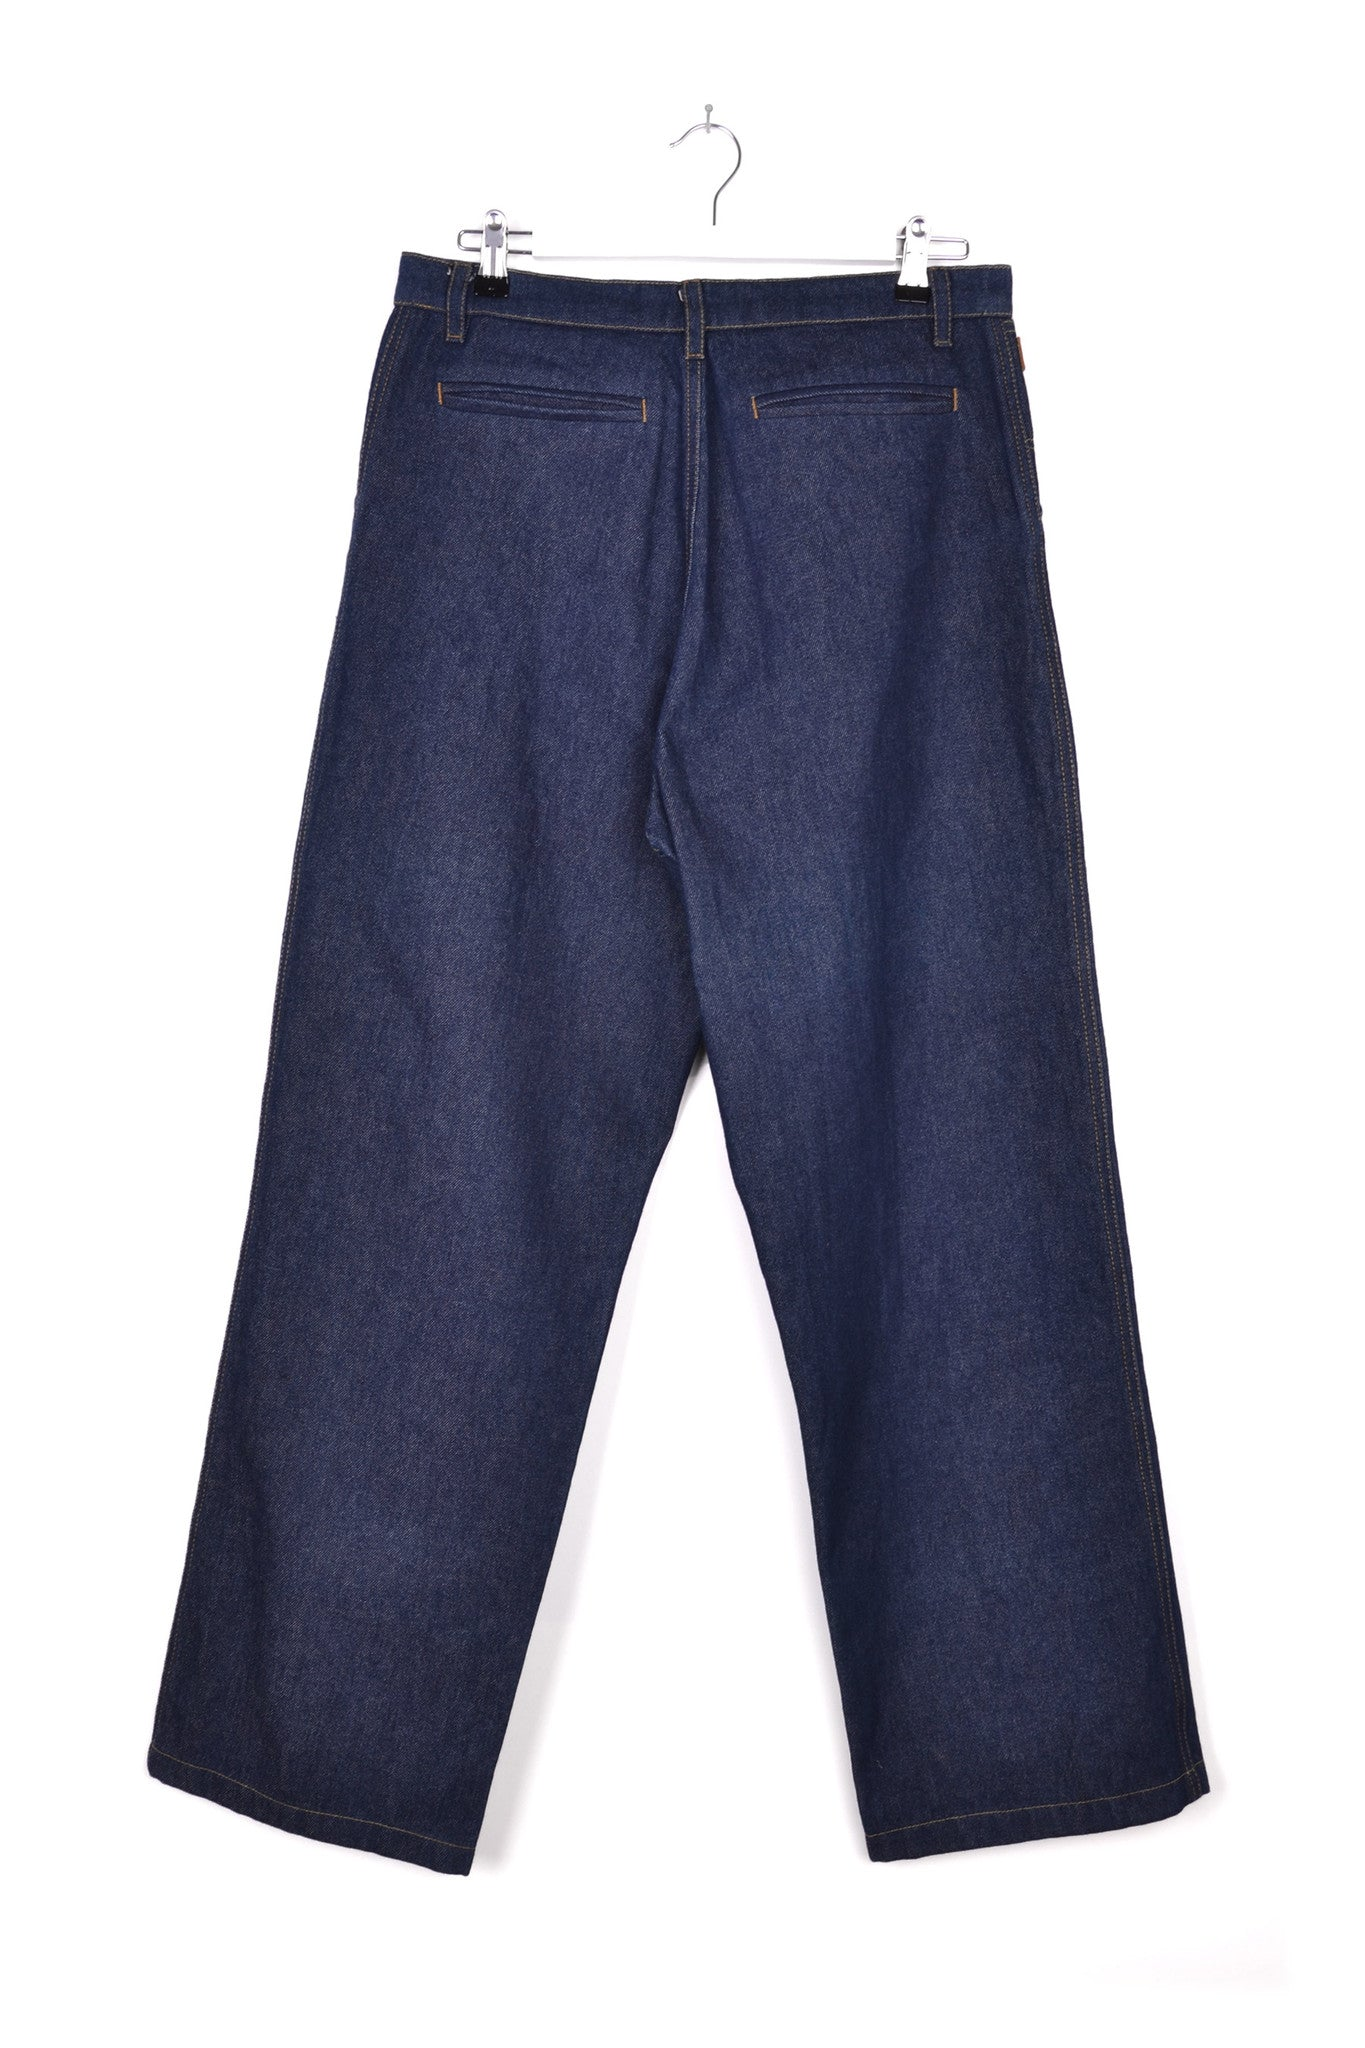 2003 A/W WIDE DENIM PANTS